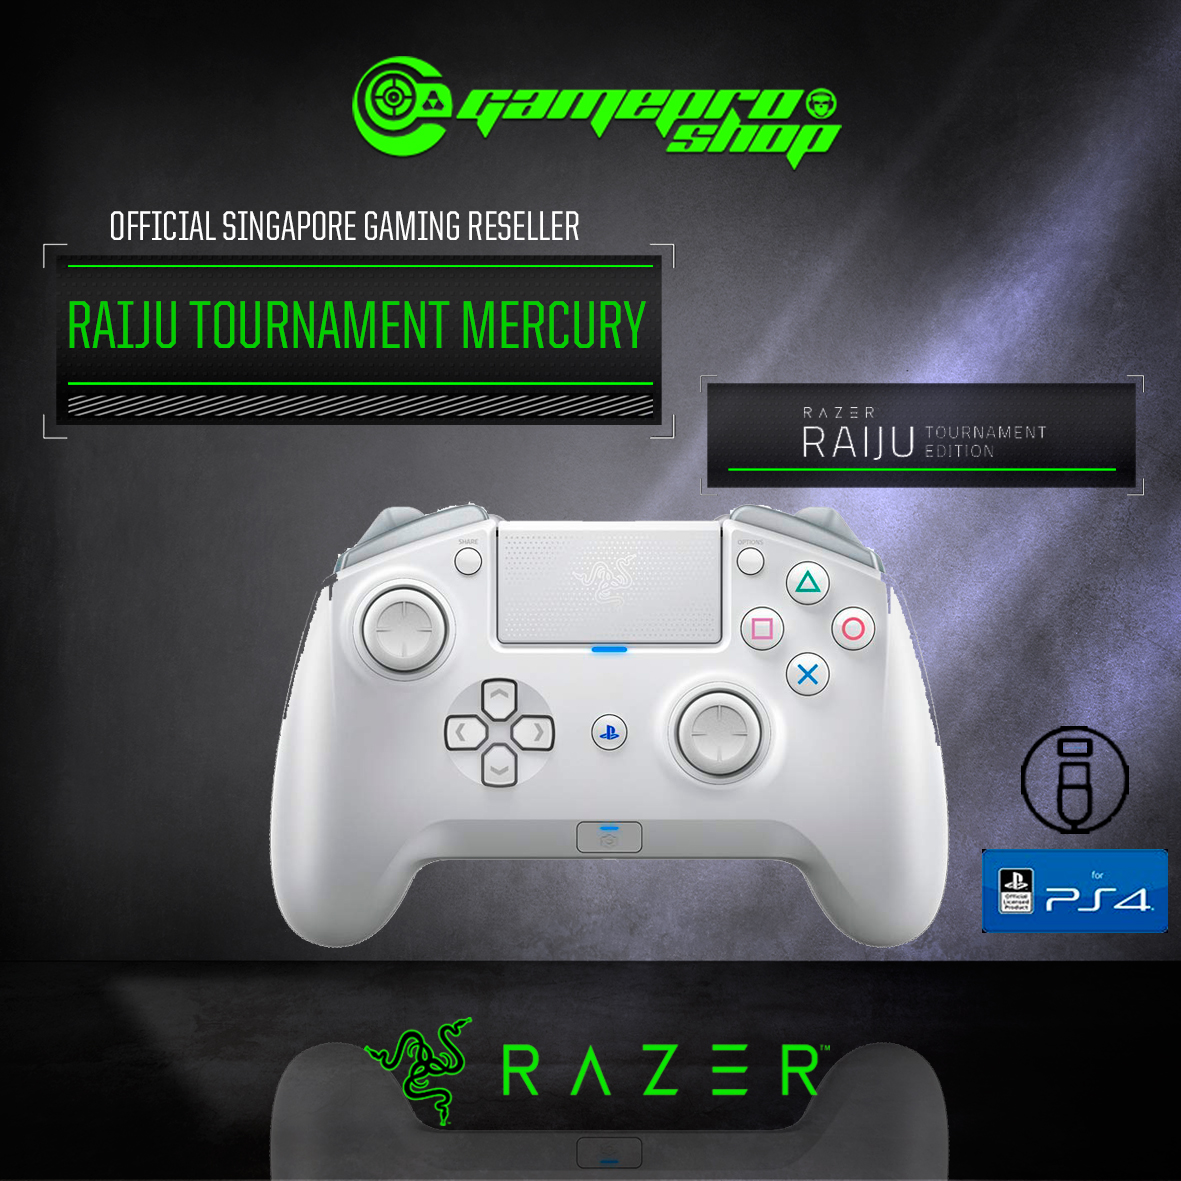 Razer Raiju Tournament Edition Wireless And Wired Gaming Controller For Ps4 Mercury Rz06 02610300 R3a1 1y Gamepro Shop Razer raiju ps4 gaming controller original box playstation 4. gamepro shop